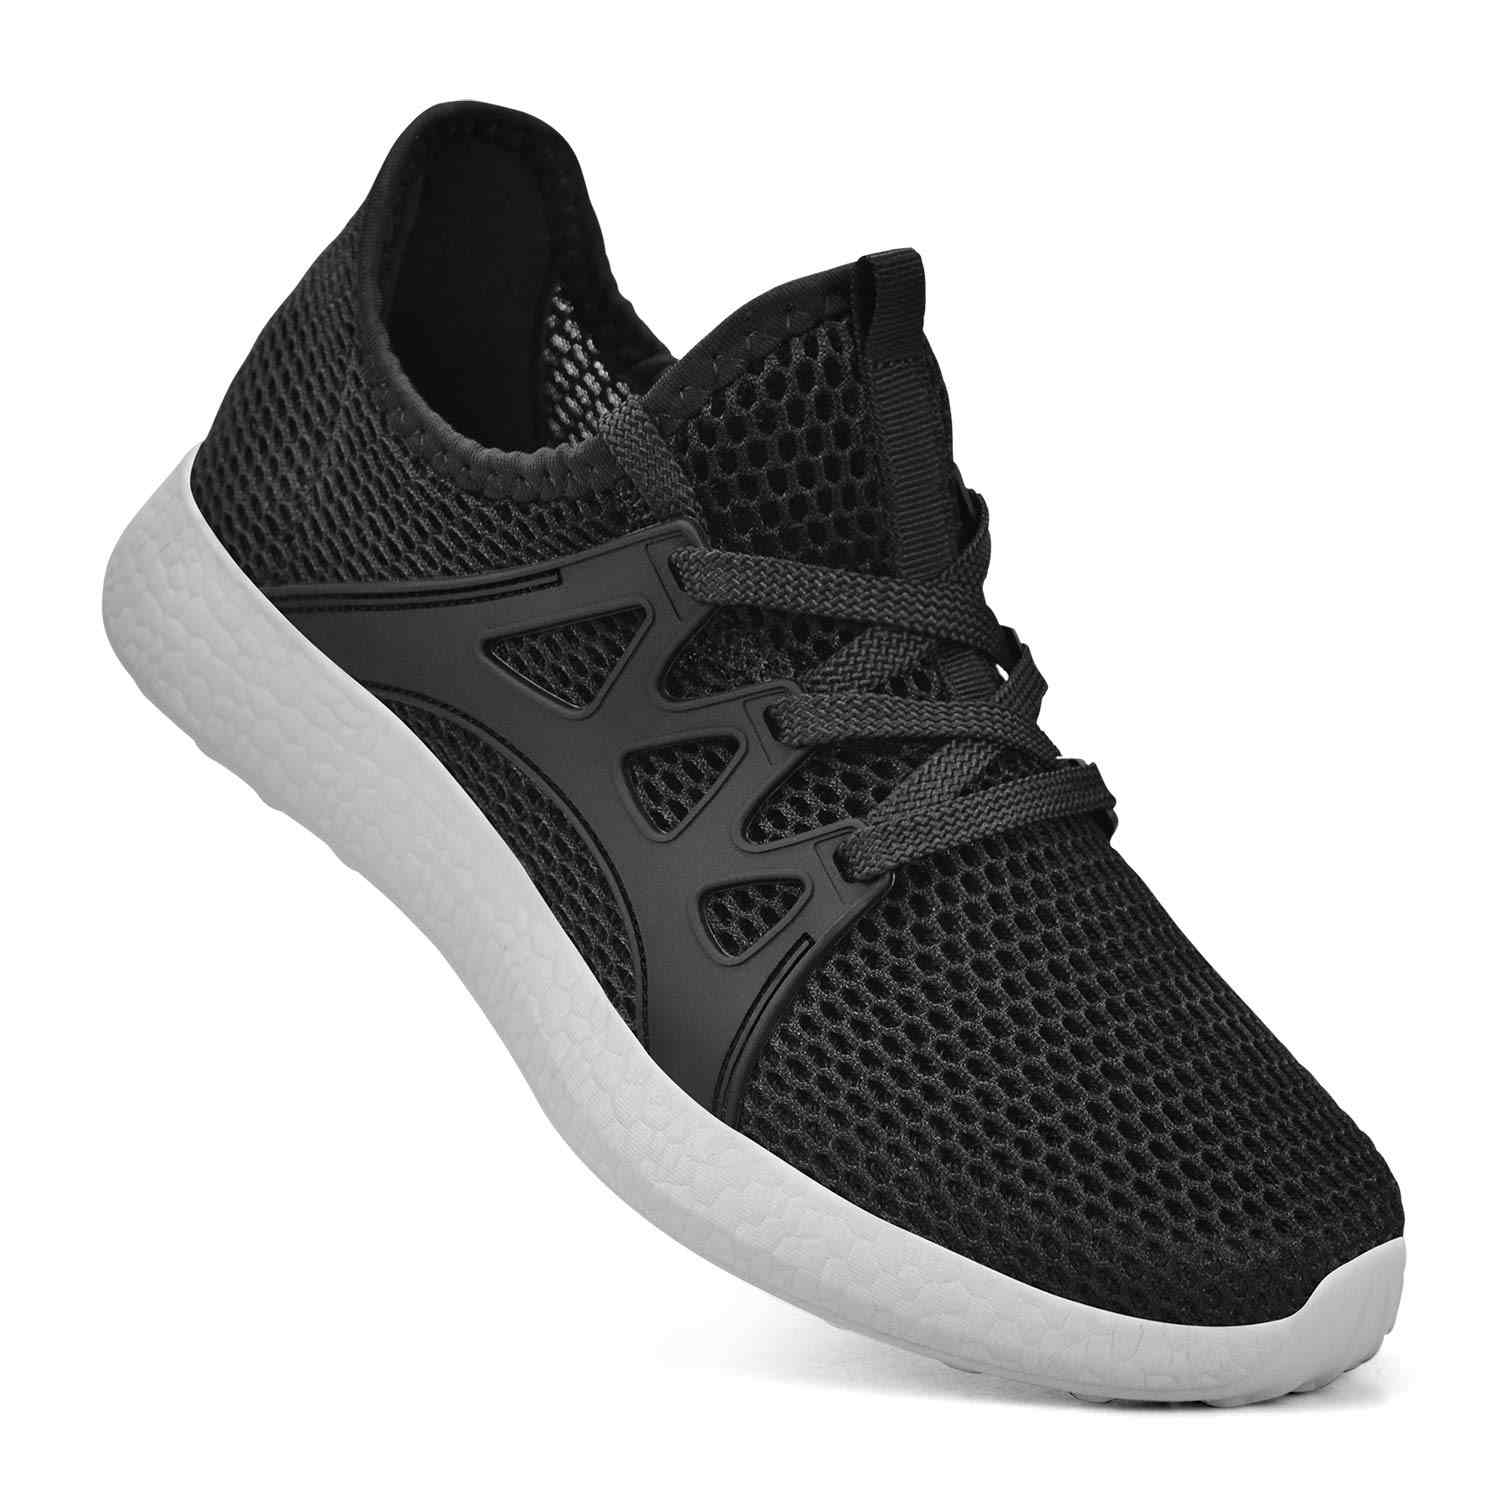 Womens Sneaker Mesh Athletic Breathable Running Tennis Shoes